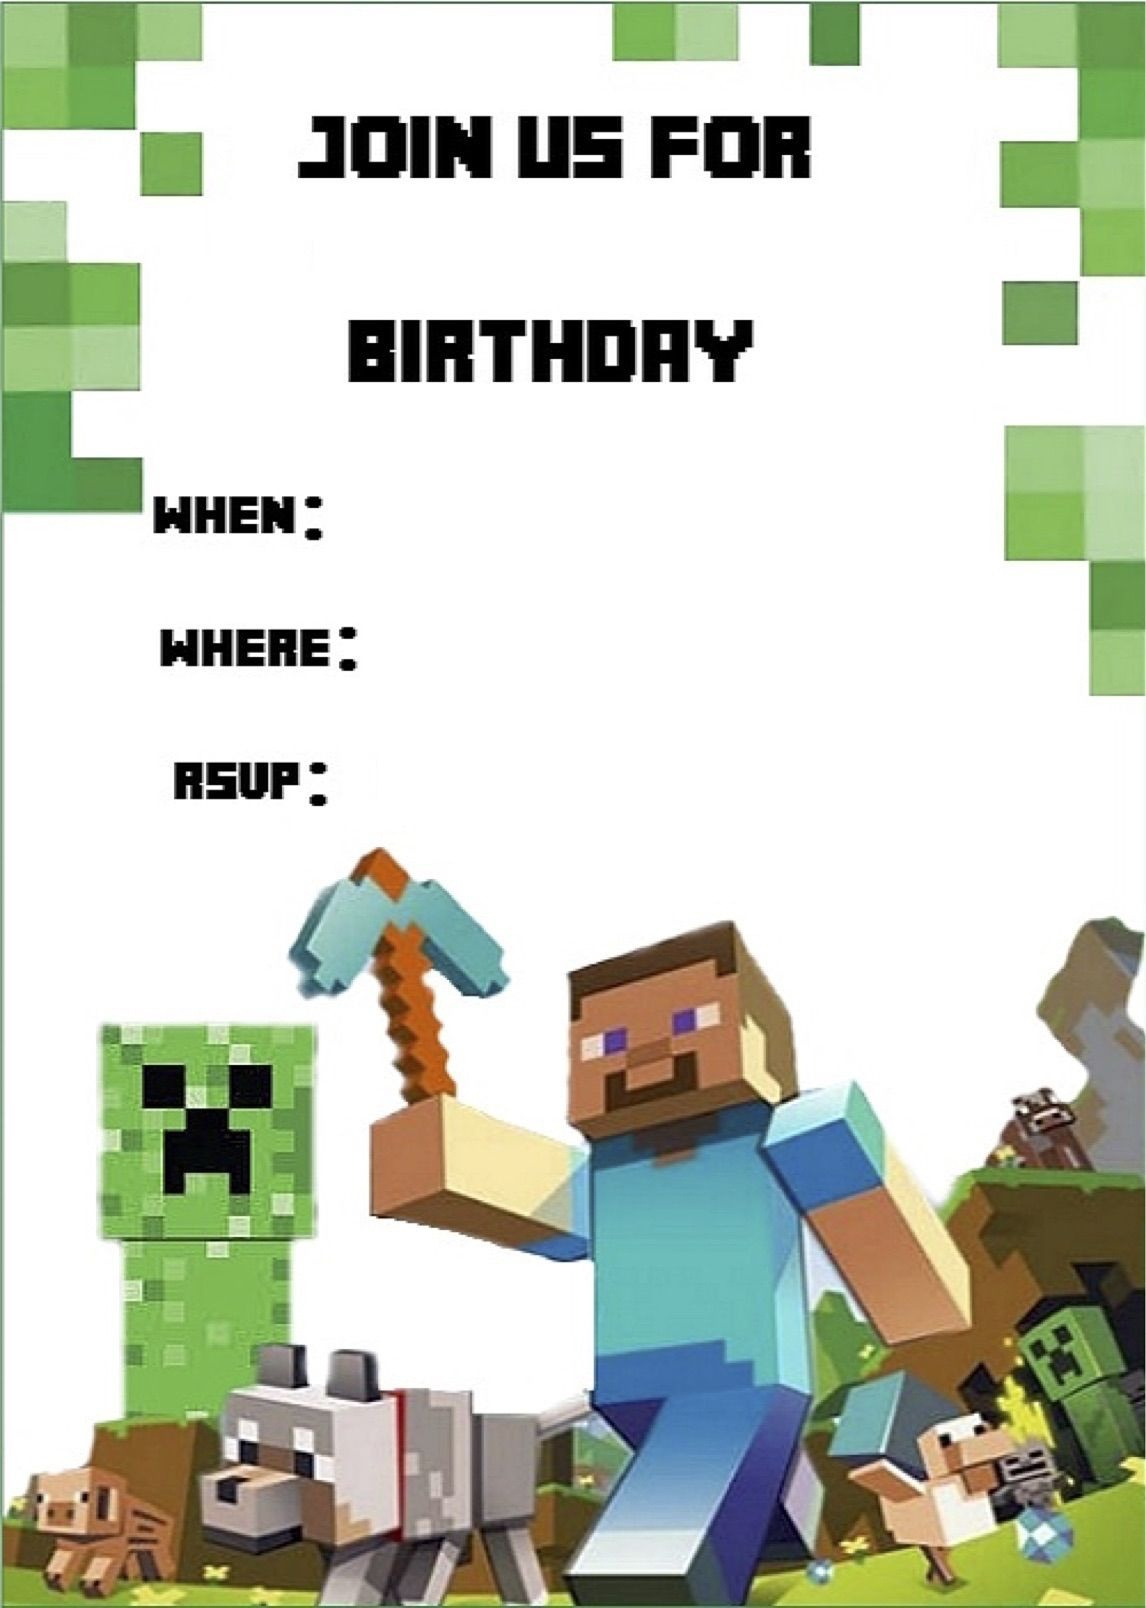 Minecraft Invite | Minecraft Party | Minecraft Invitations - Free Printable Minecraft Birthday Party Invitations Templates